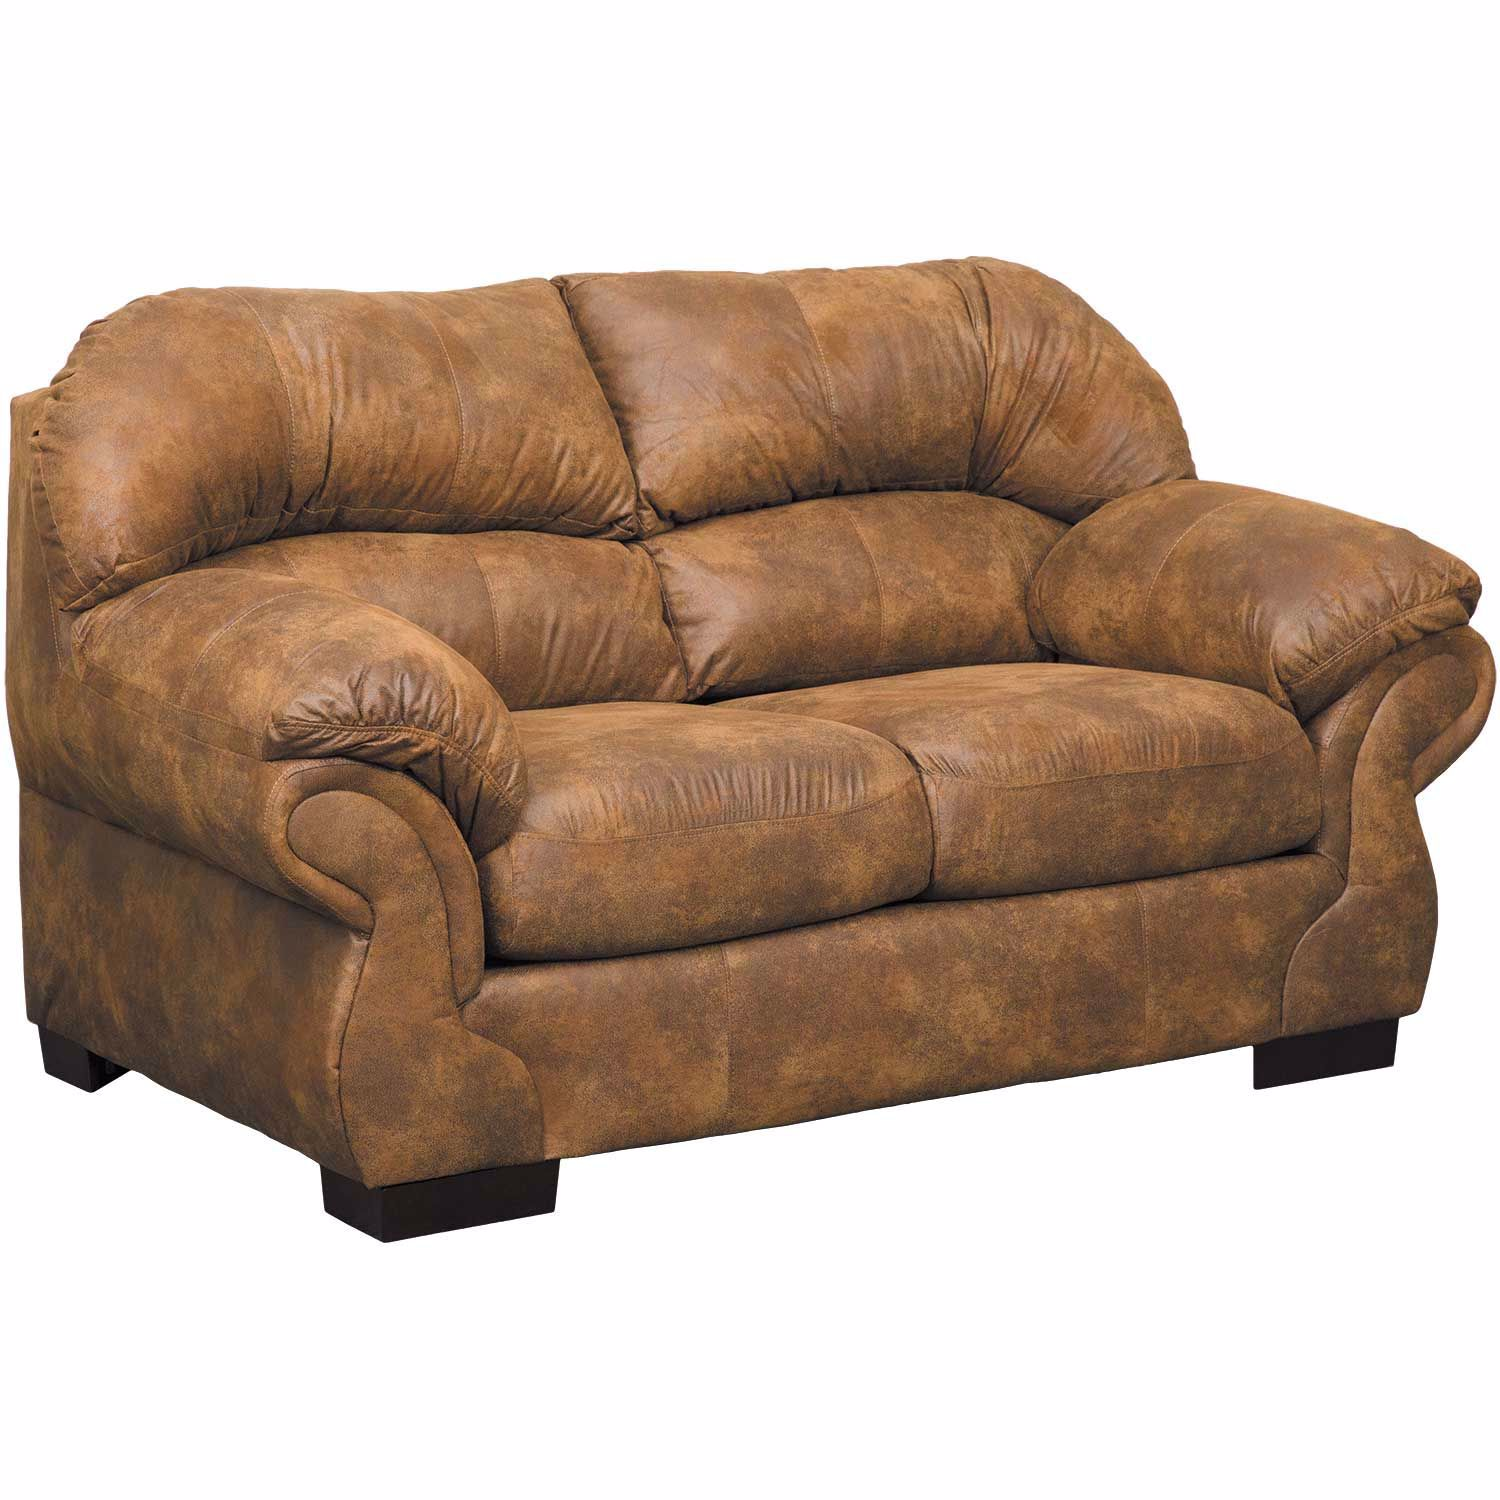 Amazing Pinto Tobacco Loveseat 6270L Pinto Tobacco Simmons Frankydiablos Diy Chair Ideas Frankydiabloscom